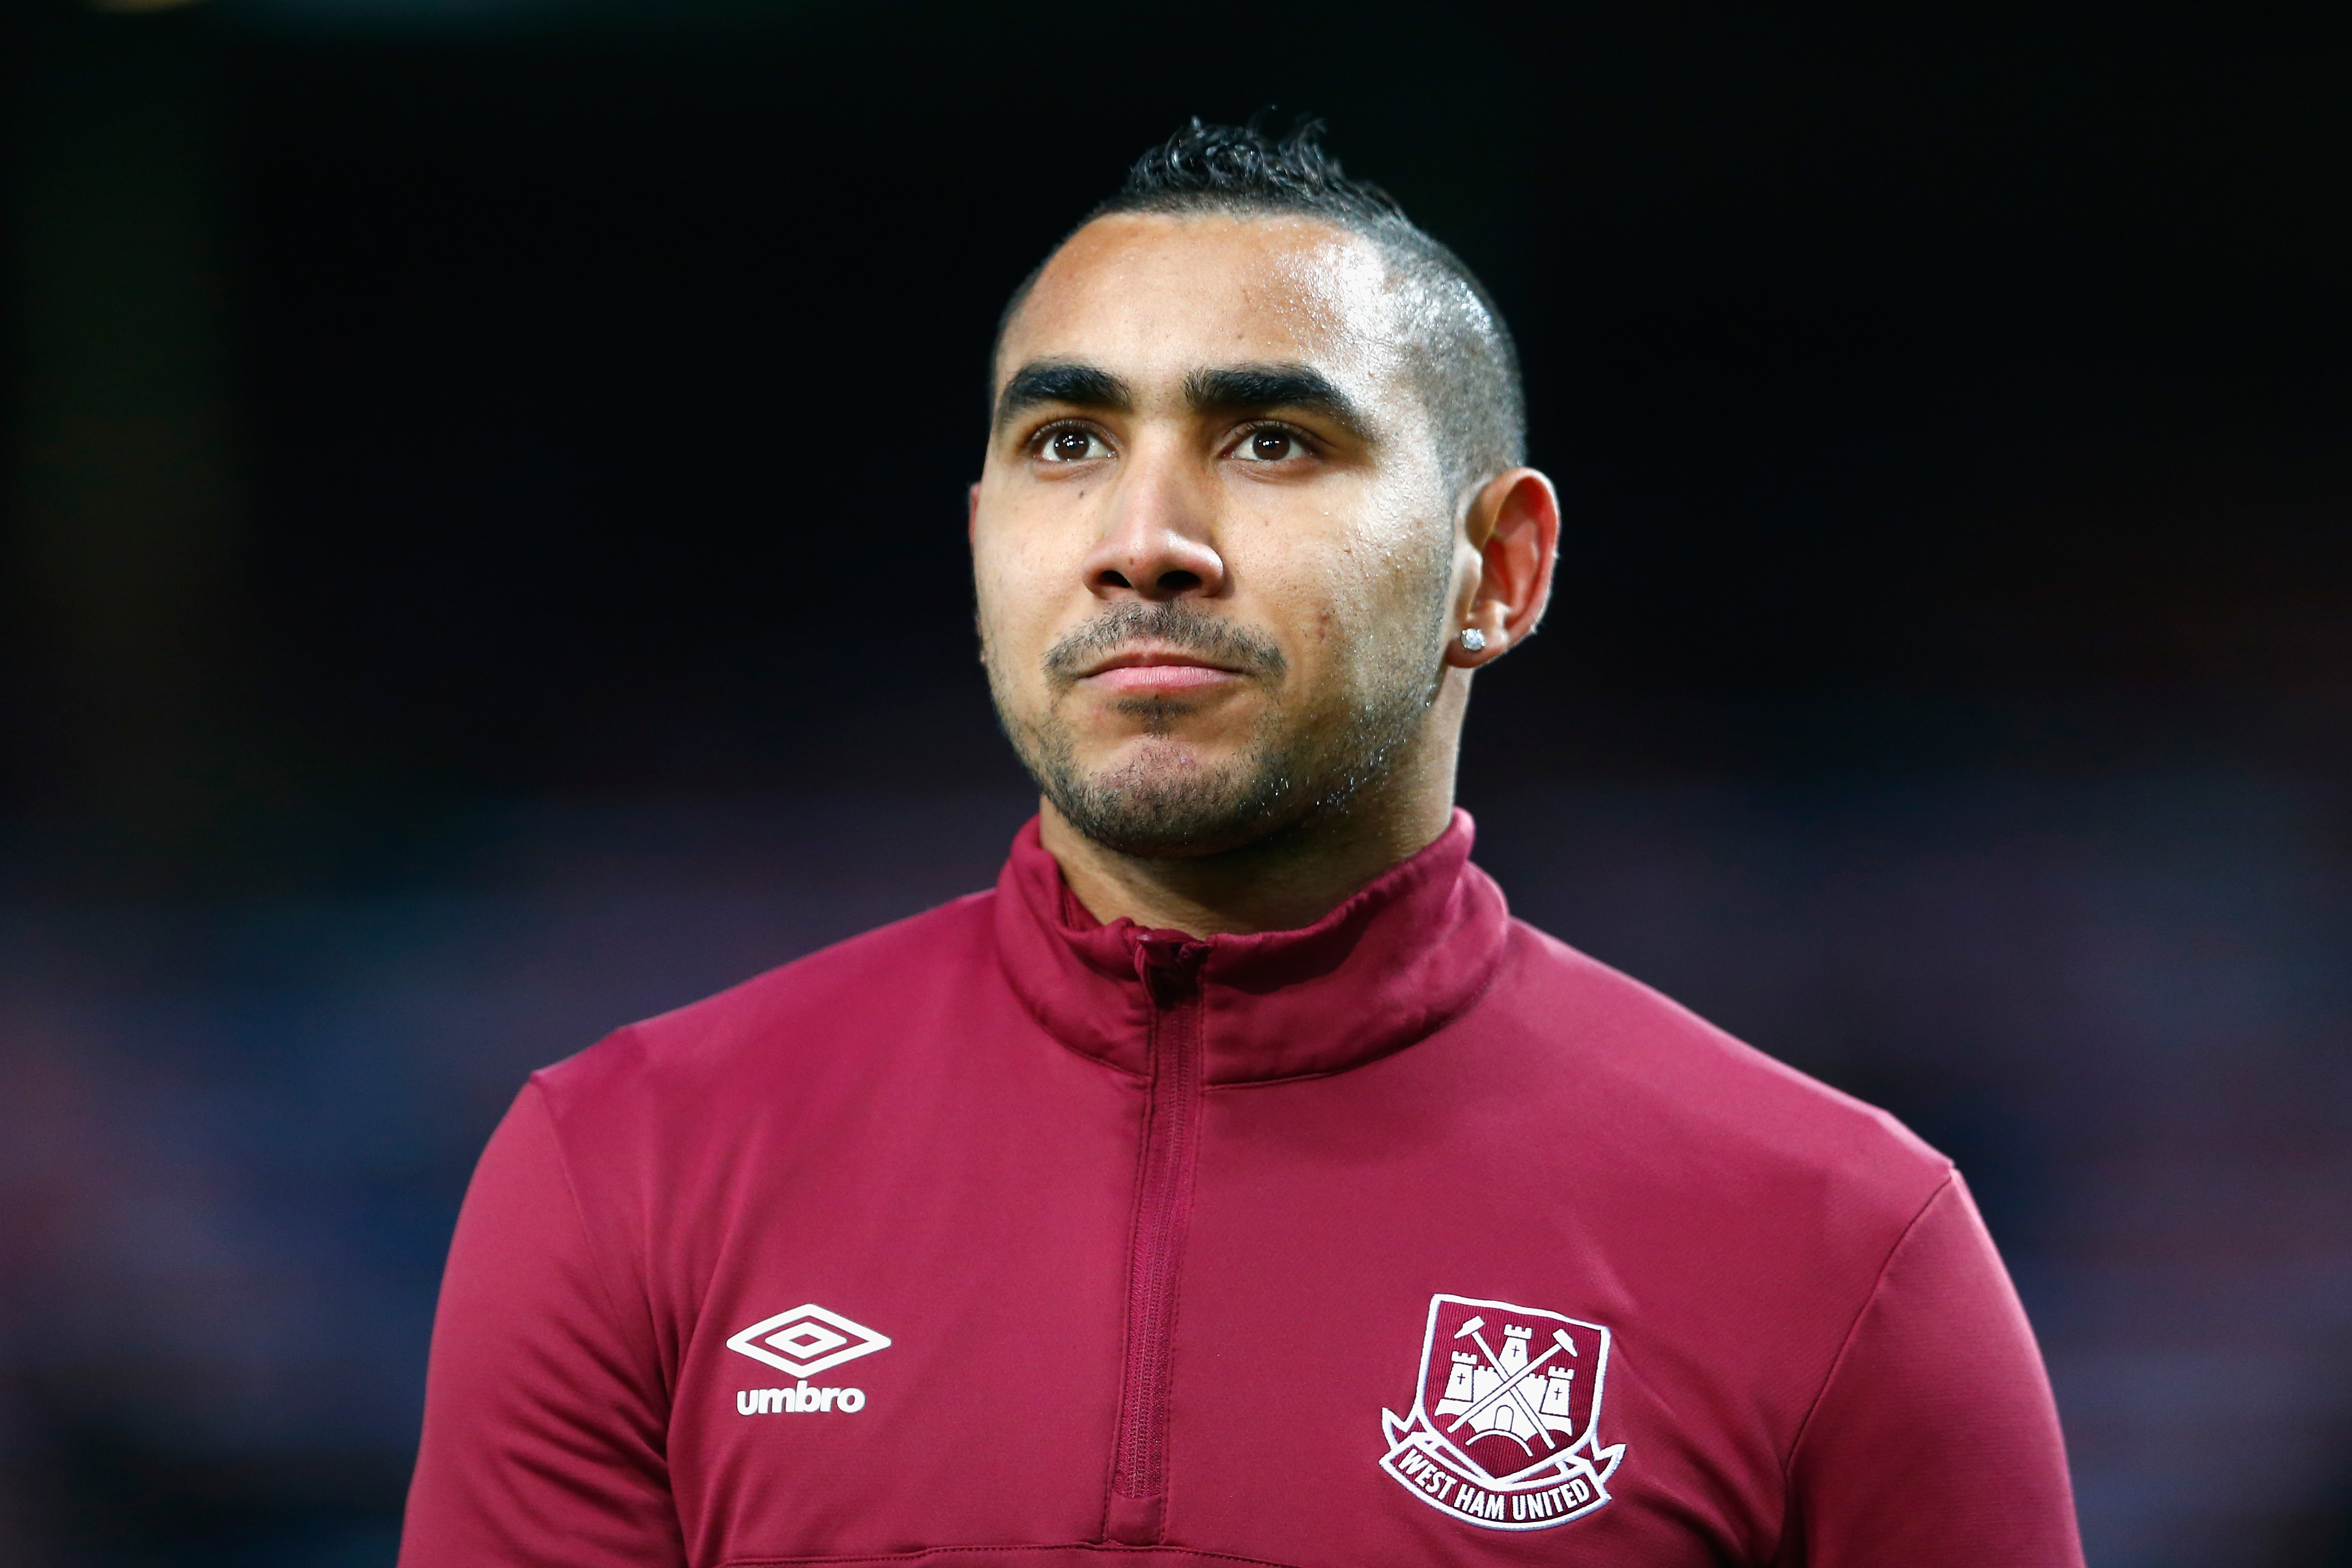 LONDON, ENGLAND - MARCH 02: Dimitri Payet of West Ham United during the warm up prior to the Barclays Premier League match between West Ham United and Tottenham Hotspur at Boleyn Ground on March 2, 2016 in London, England. (Photo by Julian Finney/Getty Images)